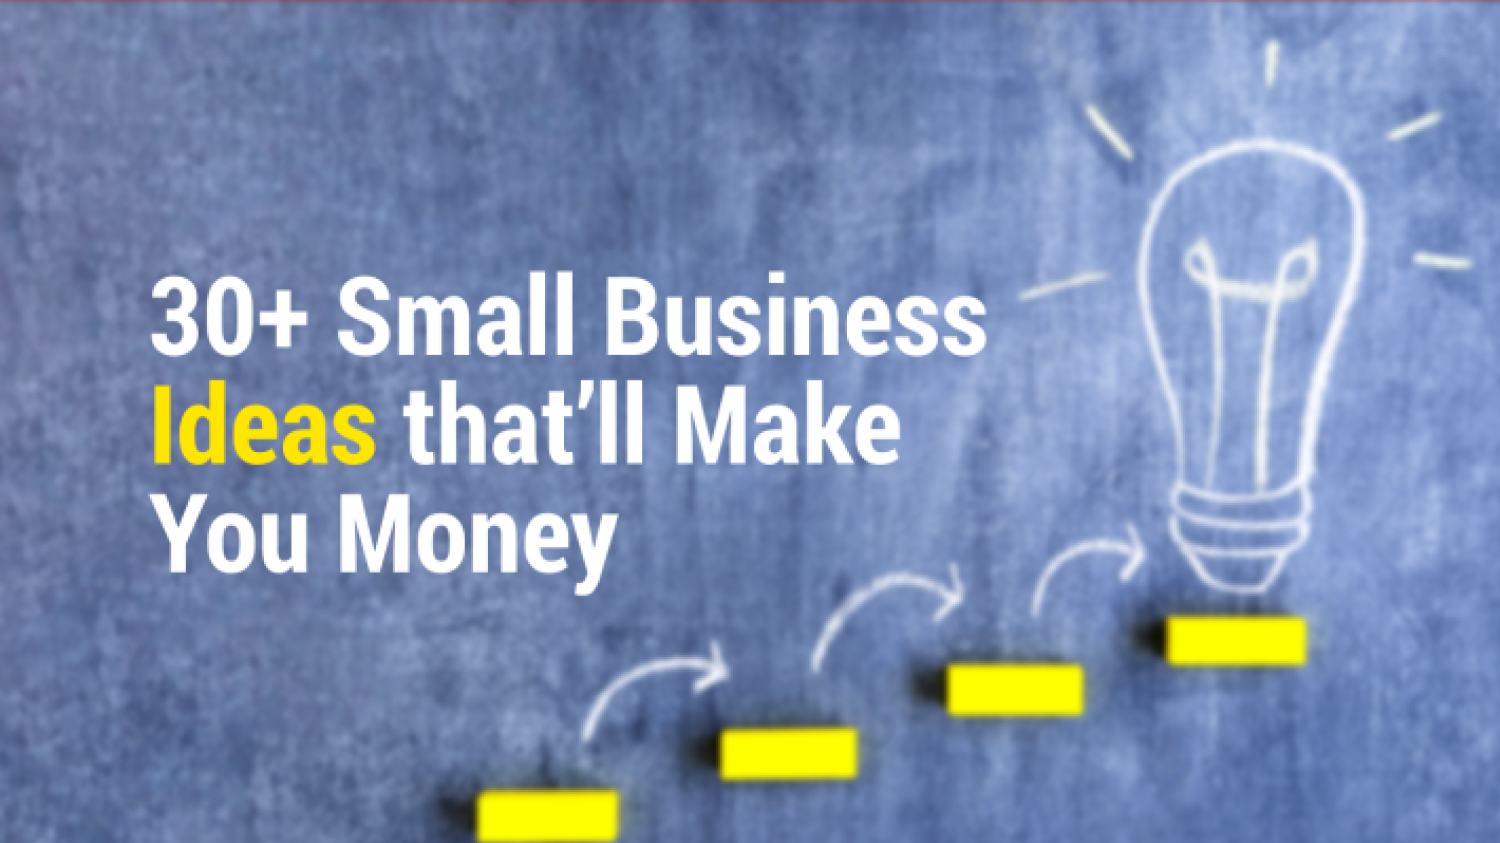 30+ Most Successful Small Business Ideas 2021